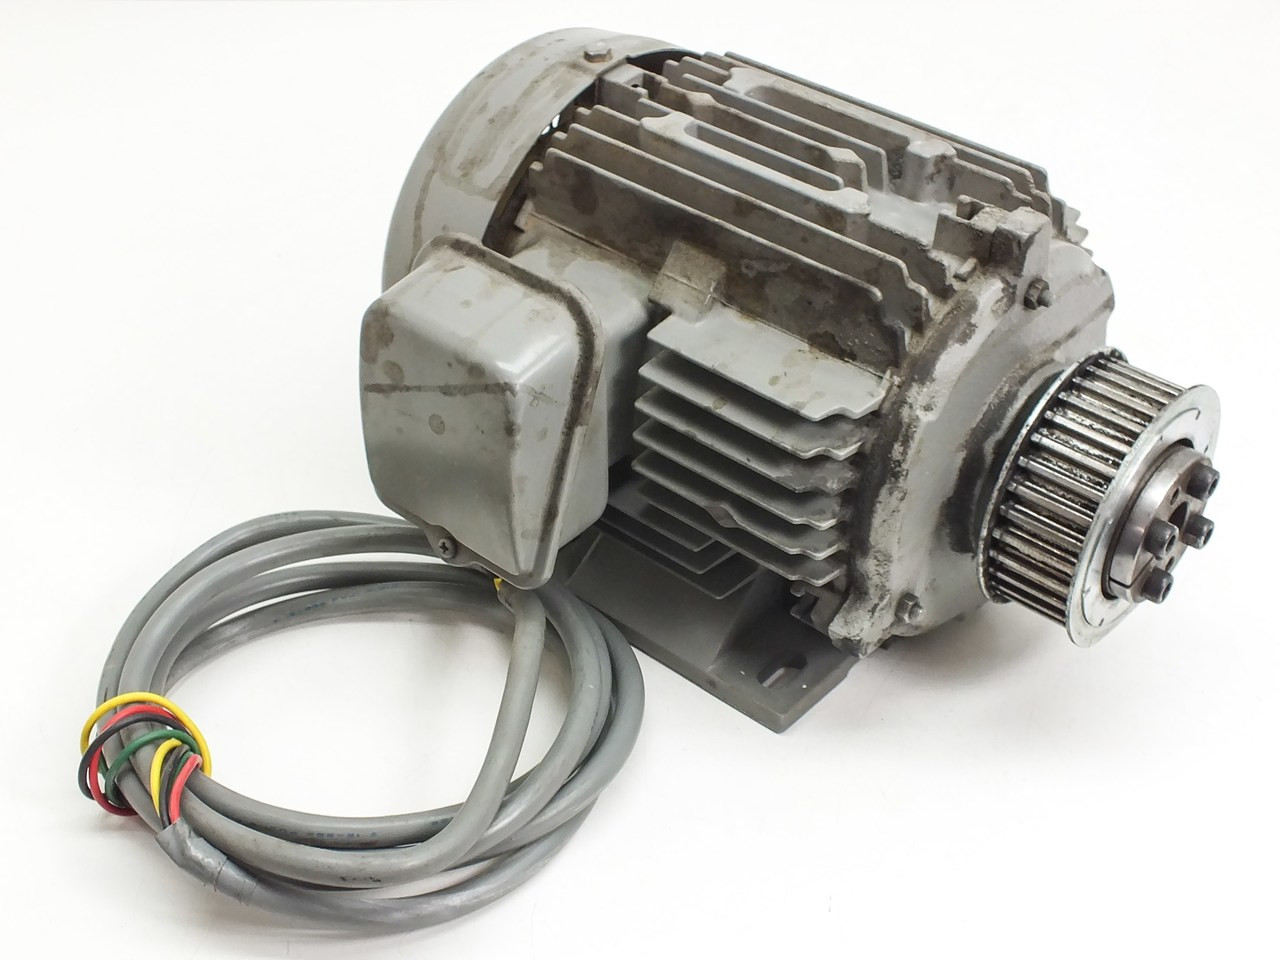 hitachi 3 phase 200 220 vac induction motor 0 75kw 71 1326 tfo  [ 1280 x 960 Pixel ]